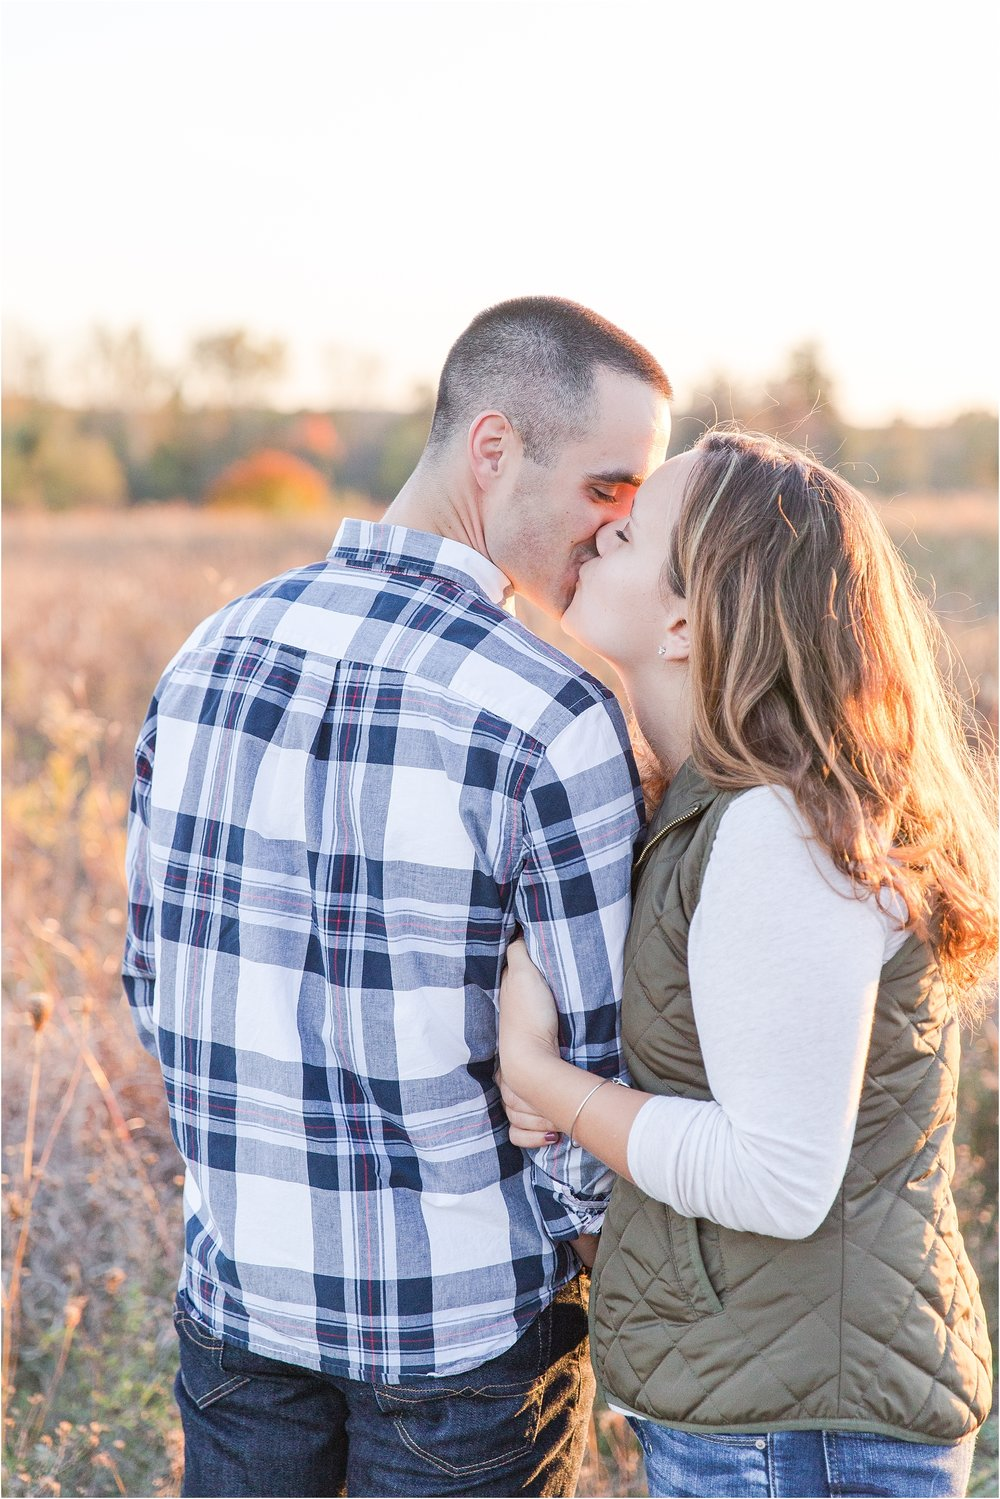 romantic-fall-engagement-photos-at-indian-springs-metropark-in-clarkston-mi-by-courtney-carolyn-photography_0030.jpg